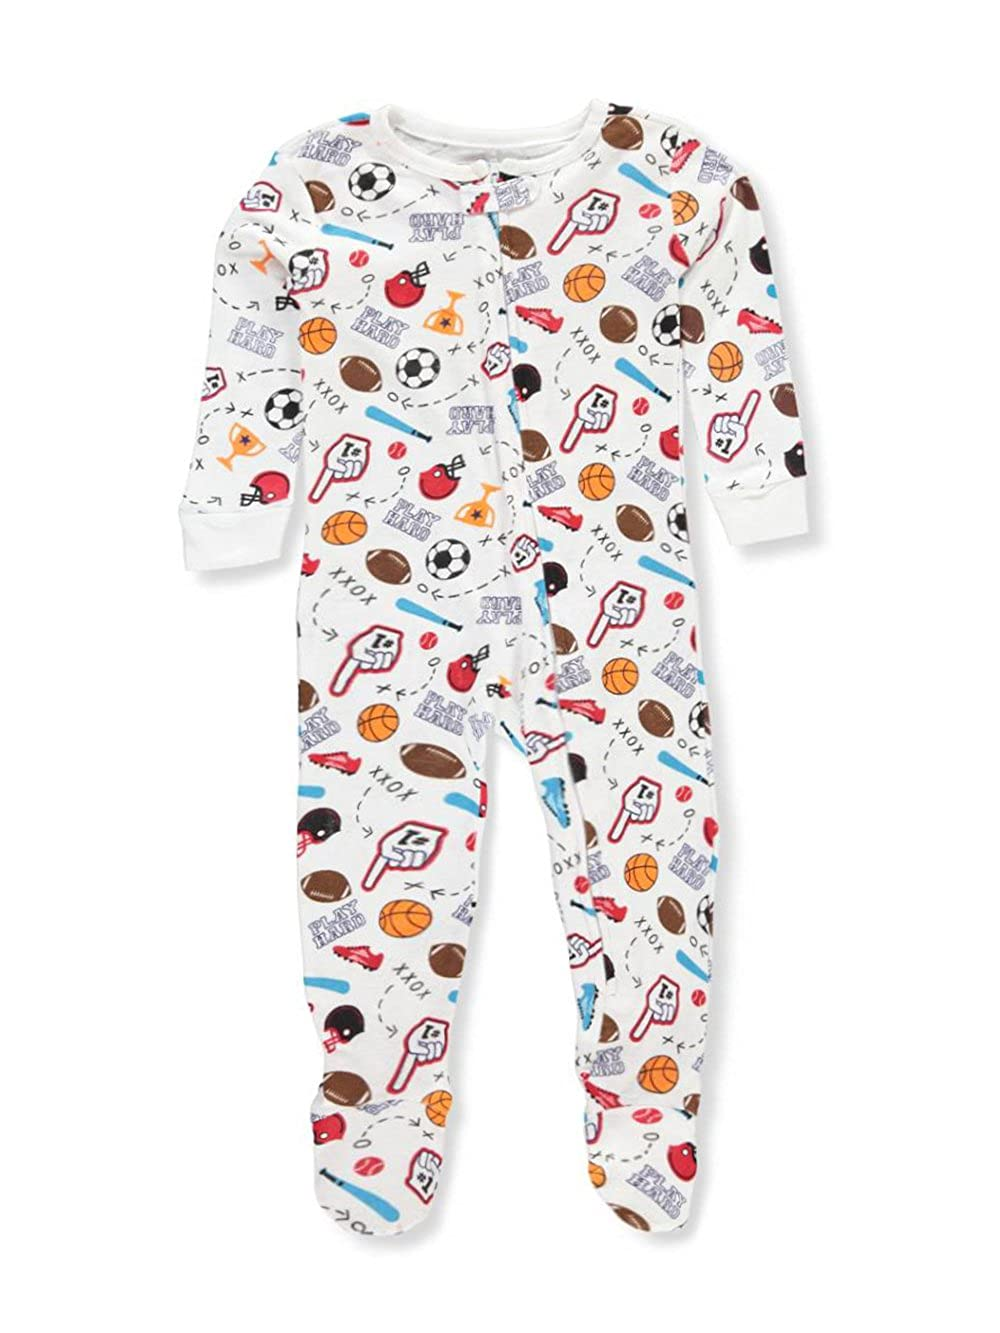 Boys Only Boys' 1-Piece Footed Pajamas 4t